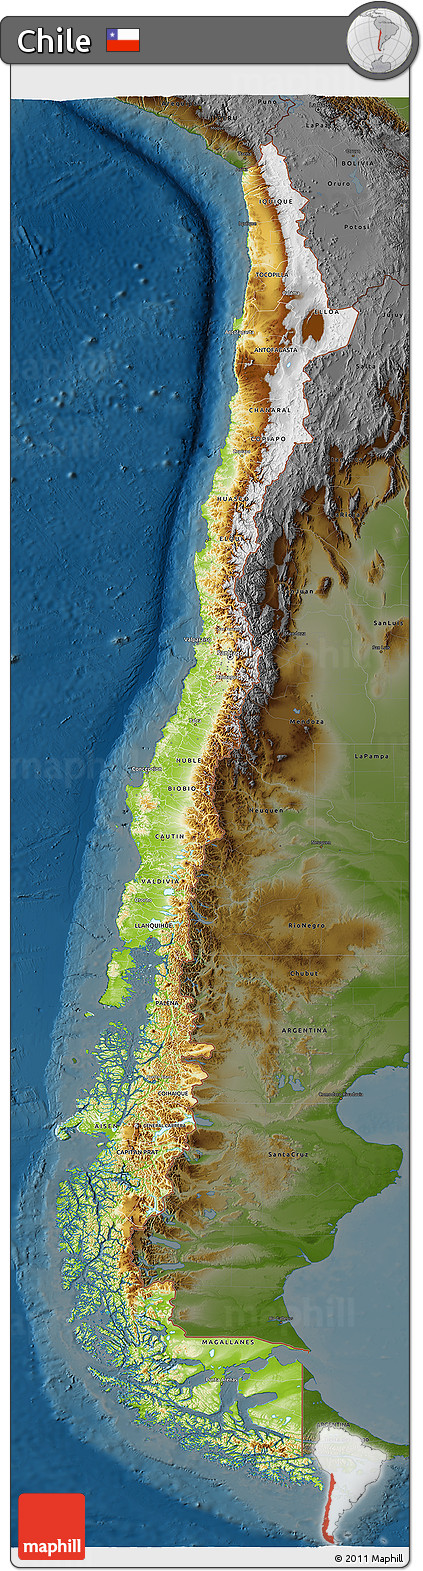 Free Physical 3D Map of Chile darken